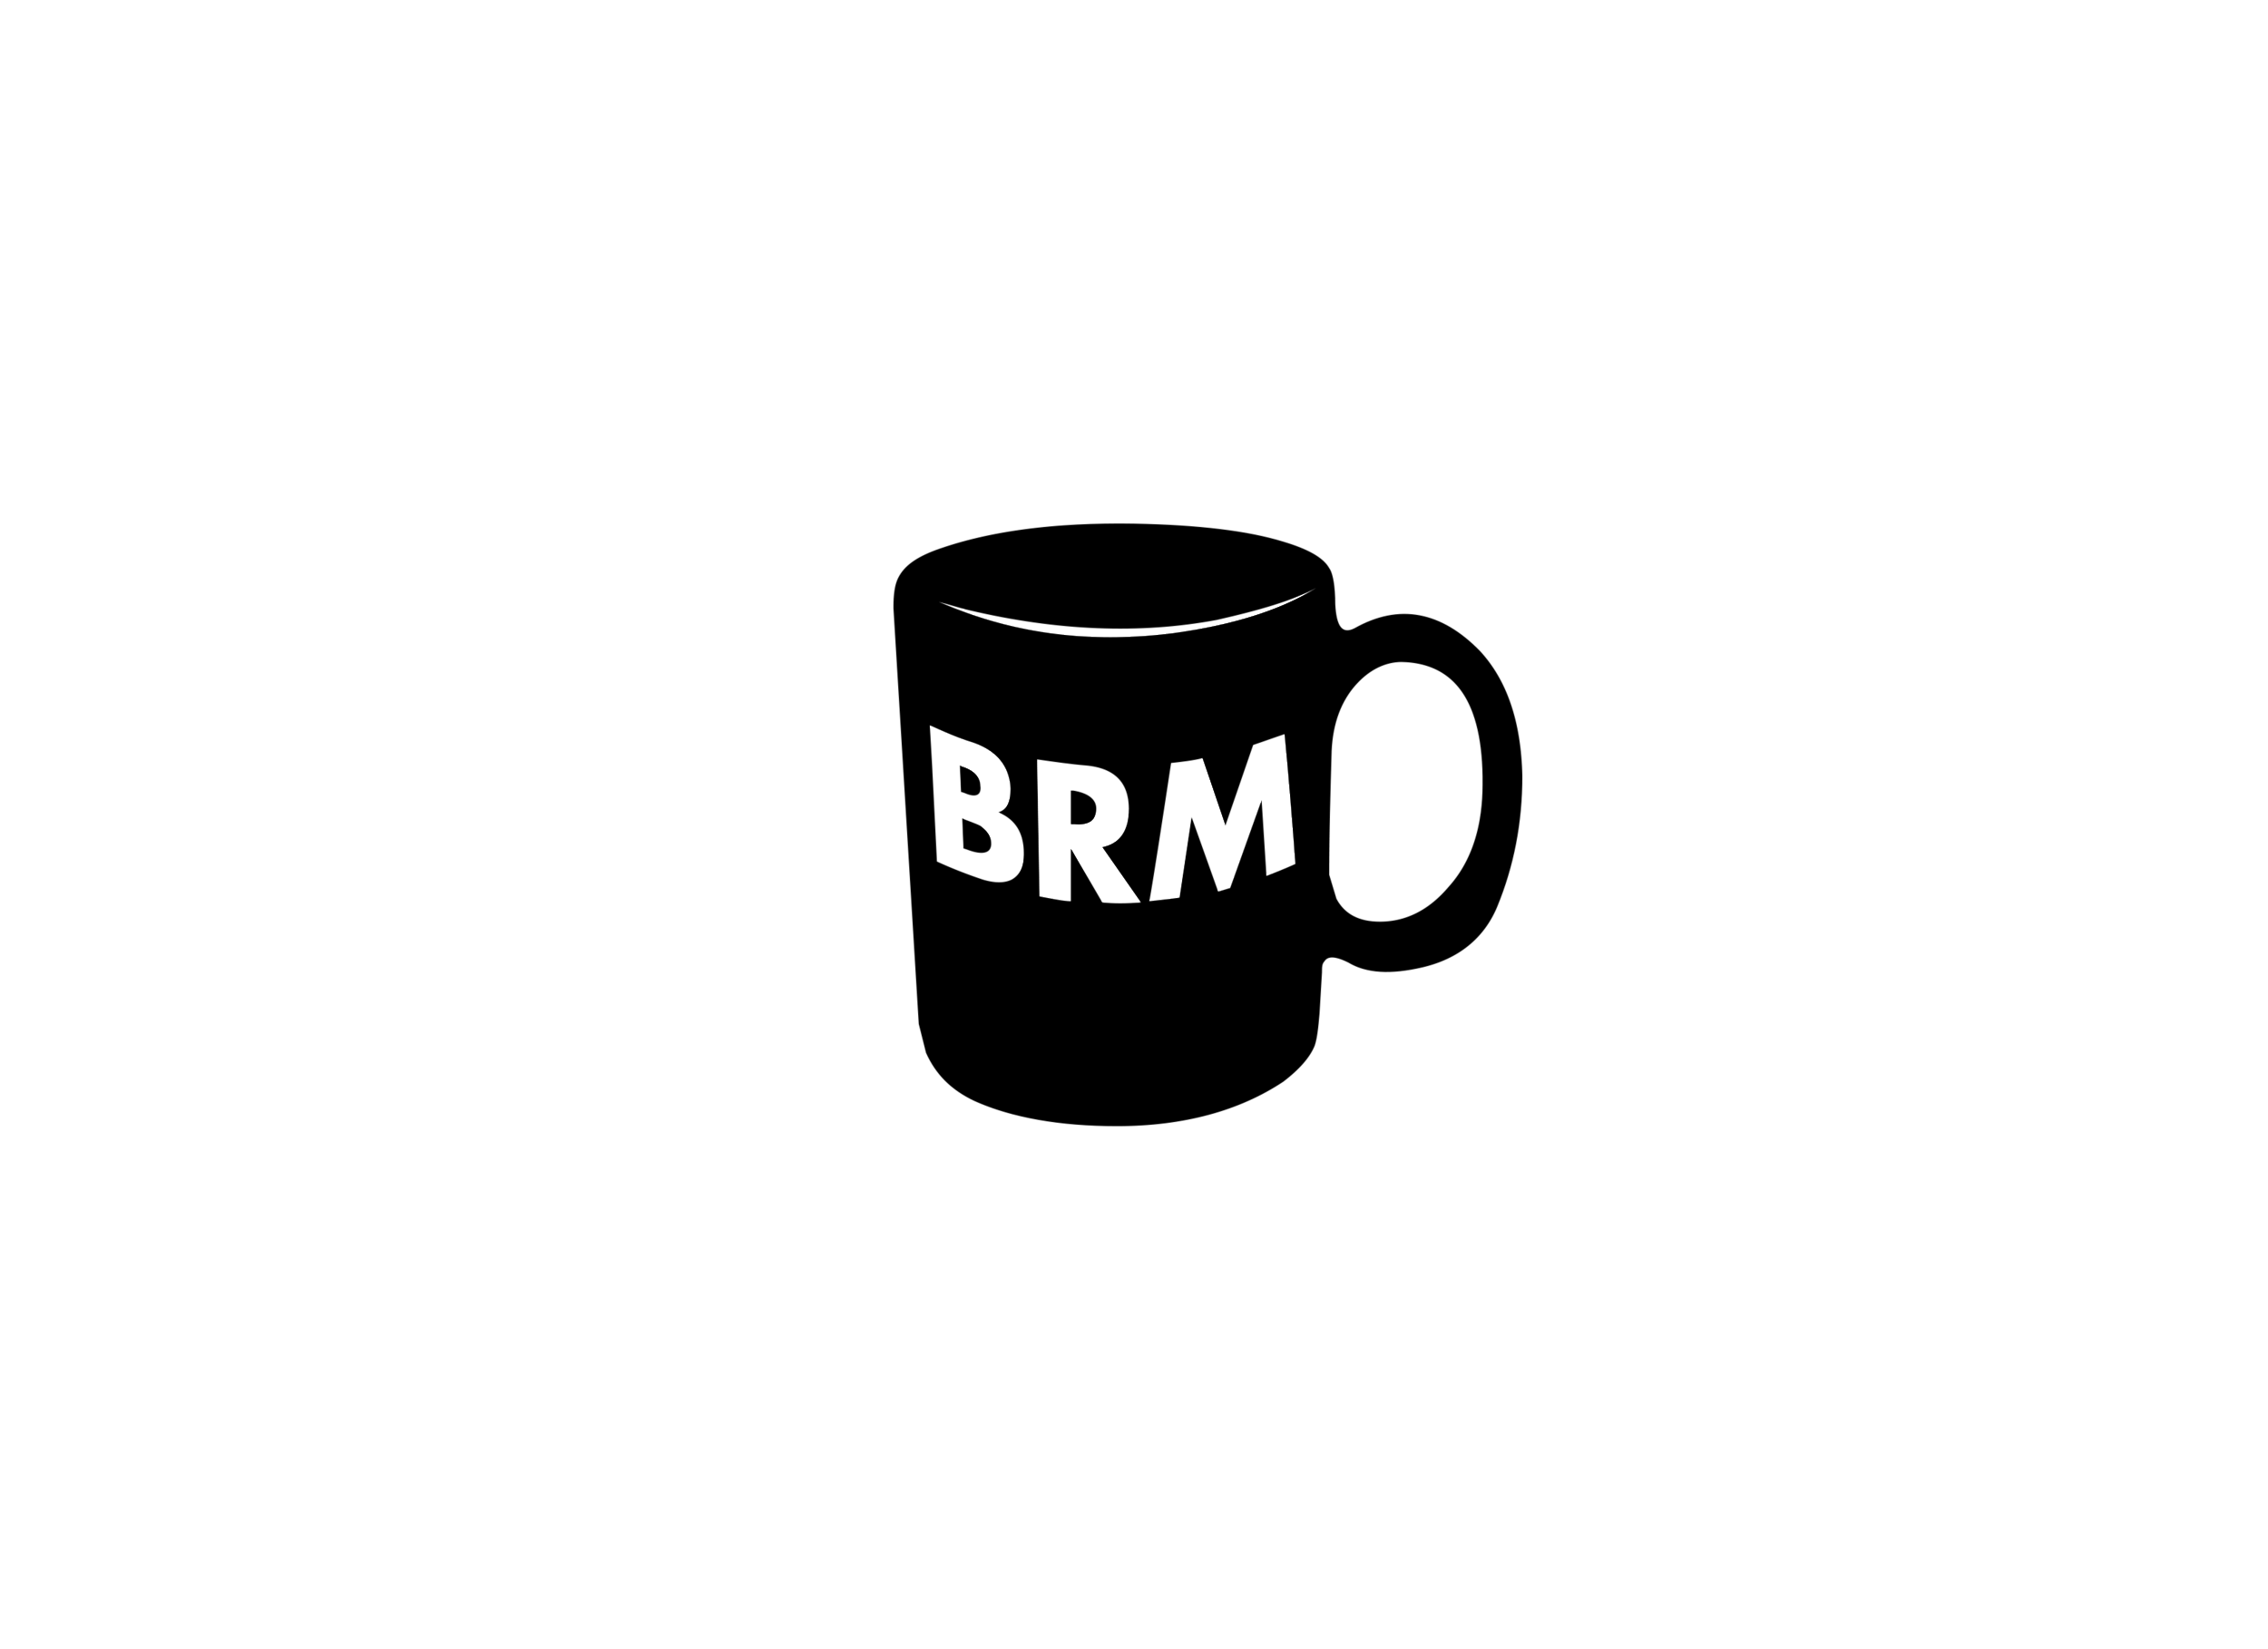 brm.png